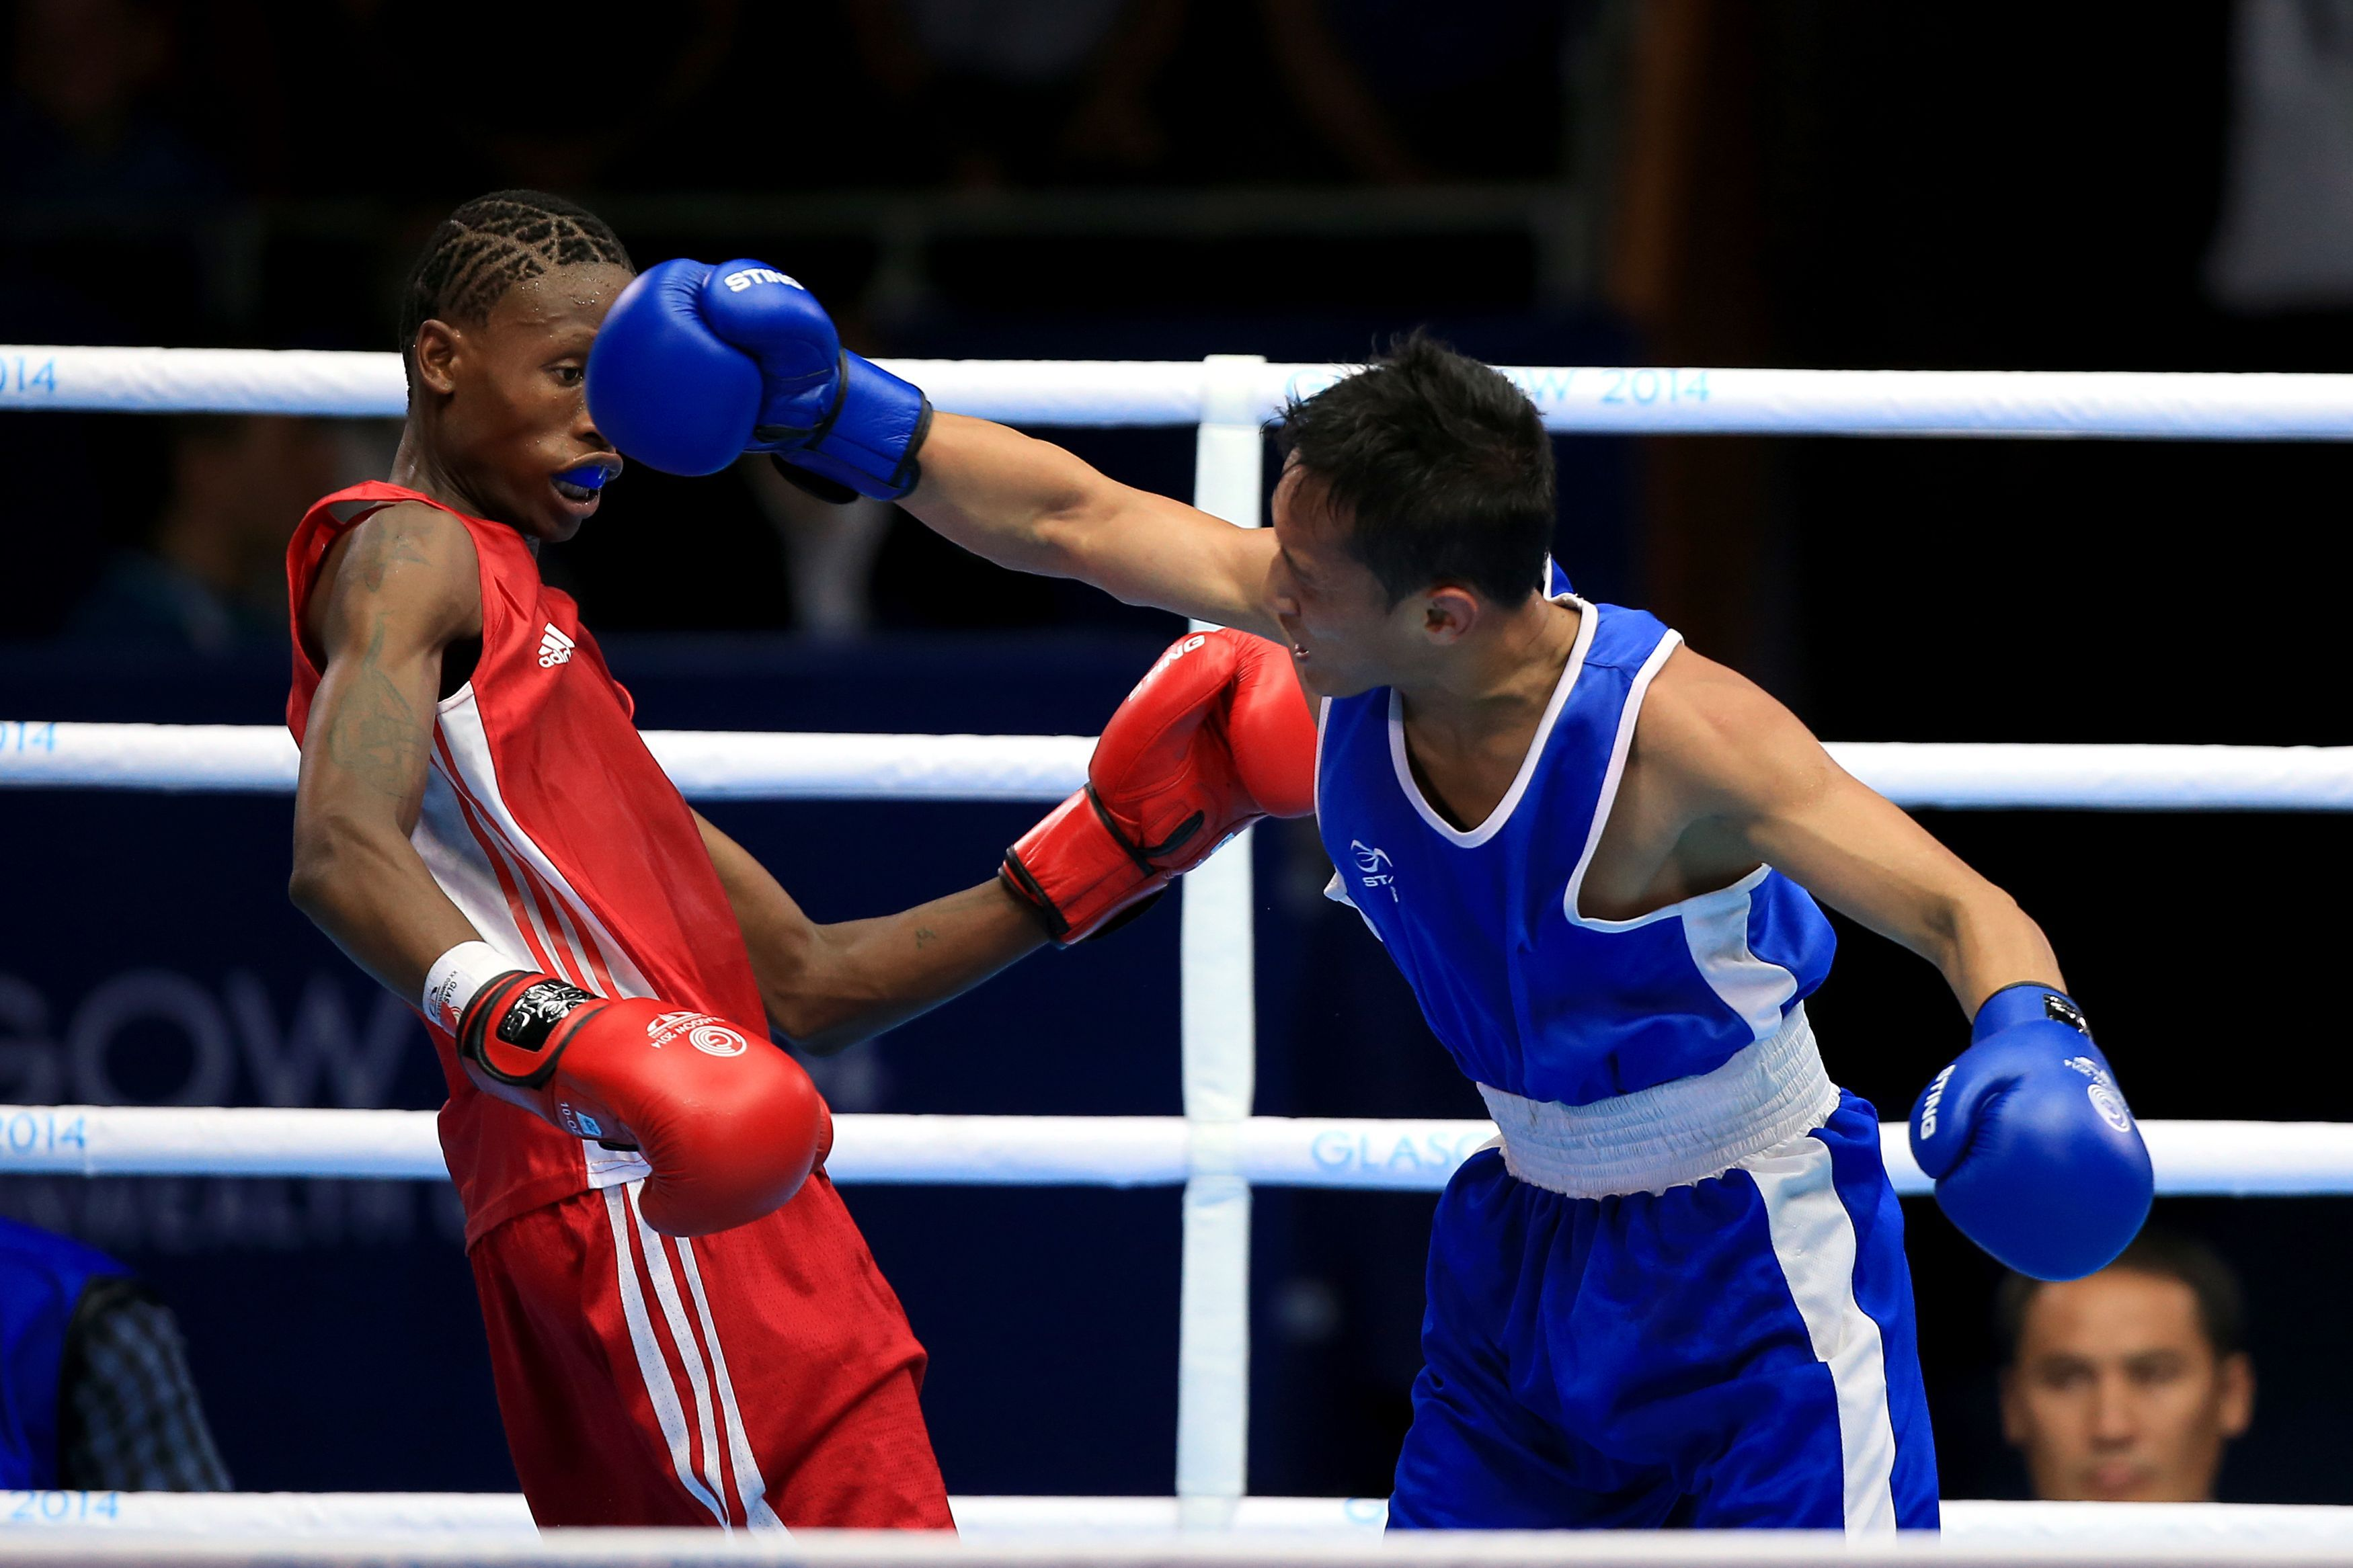 Lesotho's Inululeko Suntele, left, in action against Malaysia's Muhamad Fuad Mohd Redzuan in the Men's Light Fly round of 32 match at the SECC during the 2014 Commonwealth Games in Glasgow, Scotland, Saturday, July 26, 2014